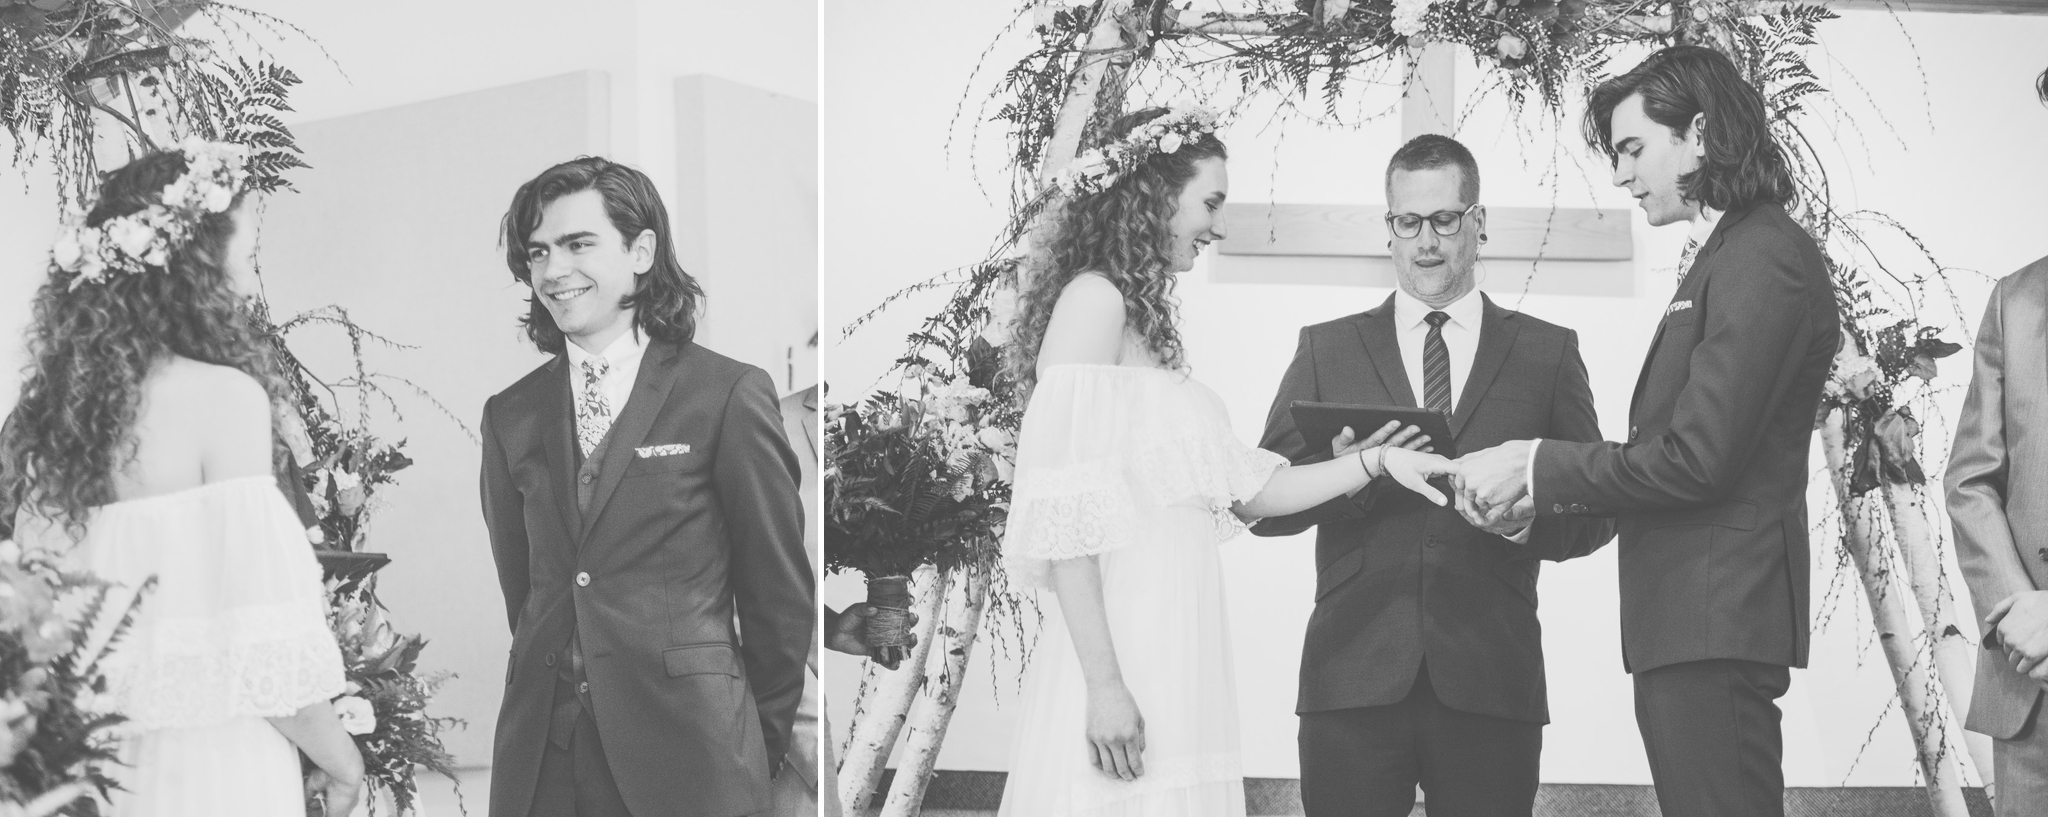 wedding, barrie wedding, barrie photographer, toronto photographer, barrie wedding photographer, toronto wedding photographer, jeannette breward photography, church, church wedding, waterfront, waterfront wedding, spring wedding, ontario wedding, couple, floral crown, religious ceremony, boho bride, boho wedding, bohemian wedding, floral crown, emotional, emotions, emotional wedding, black and white, ceremony, bridesmaids, wedding party, church, ceremony